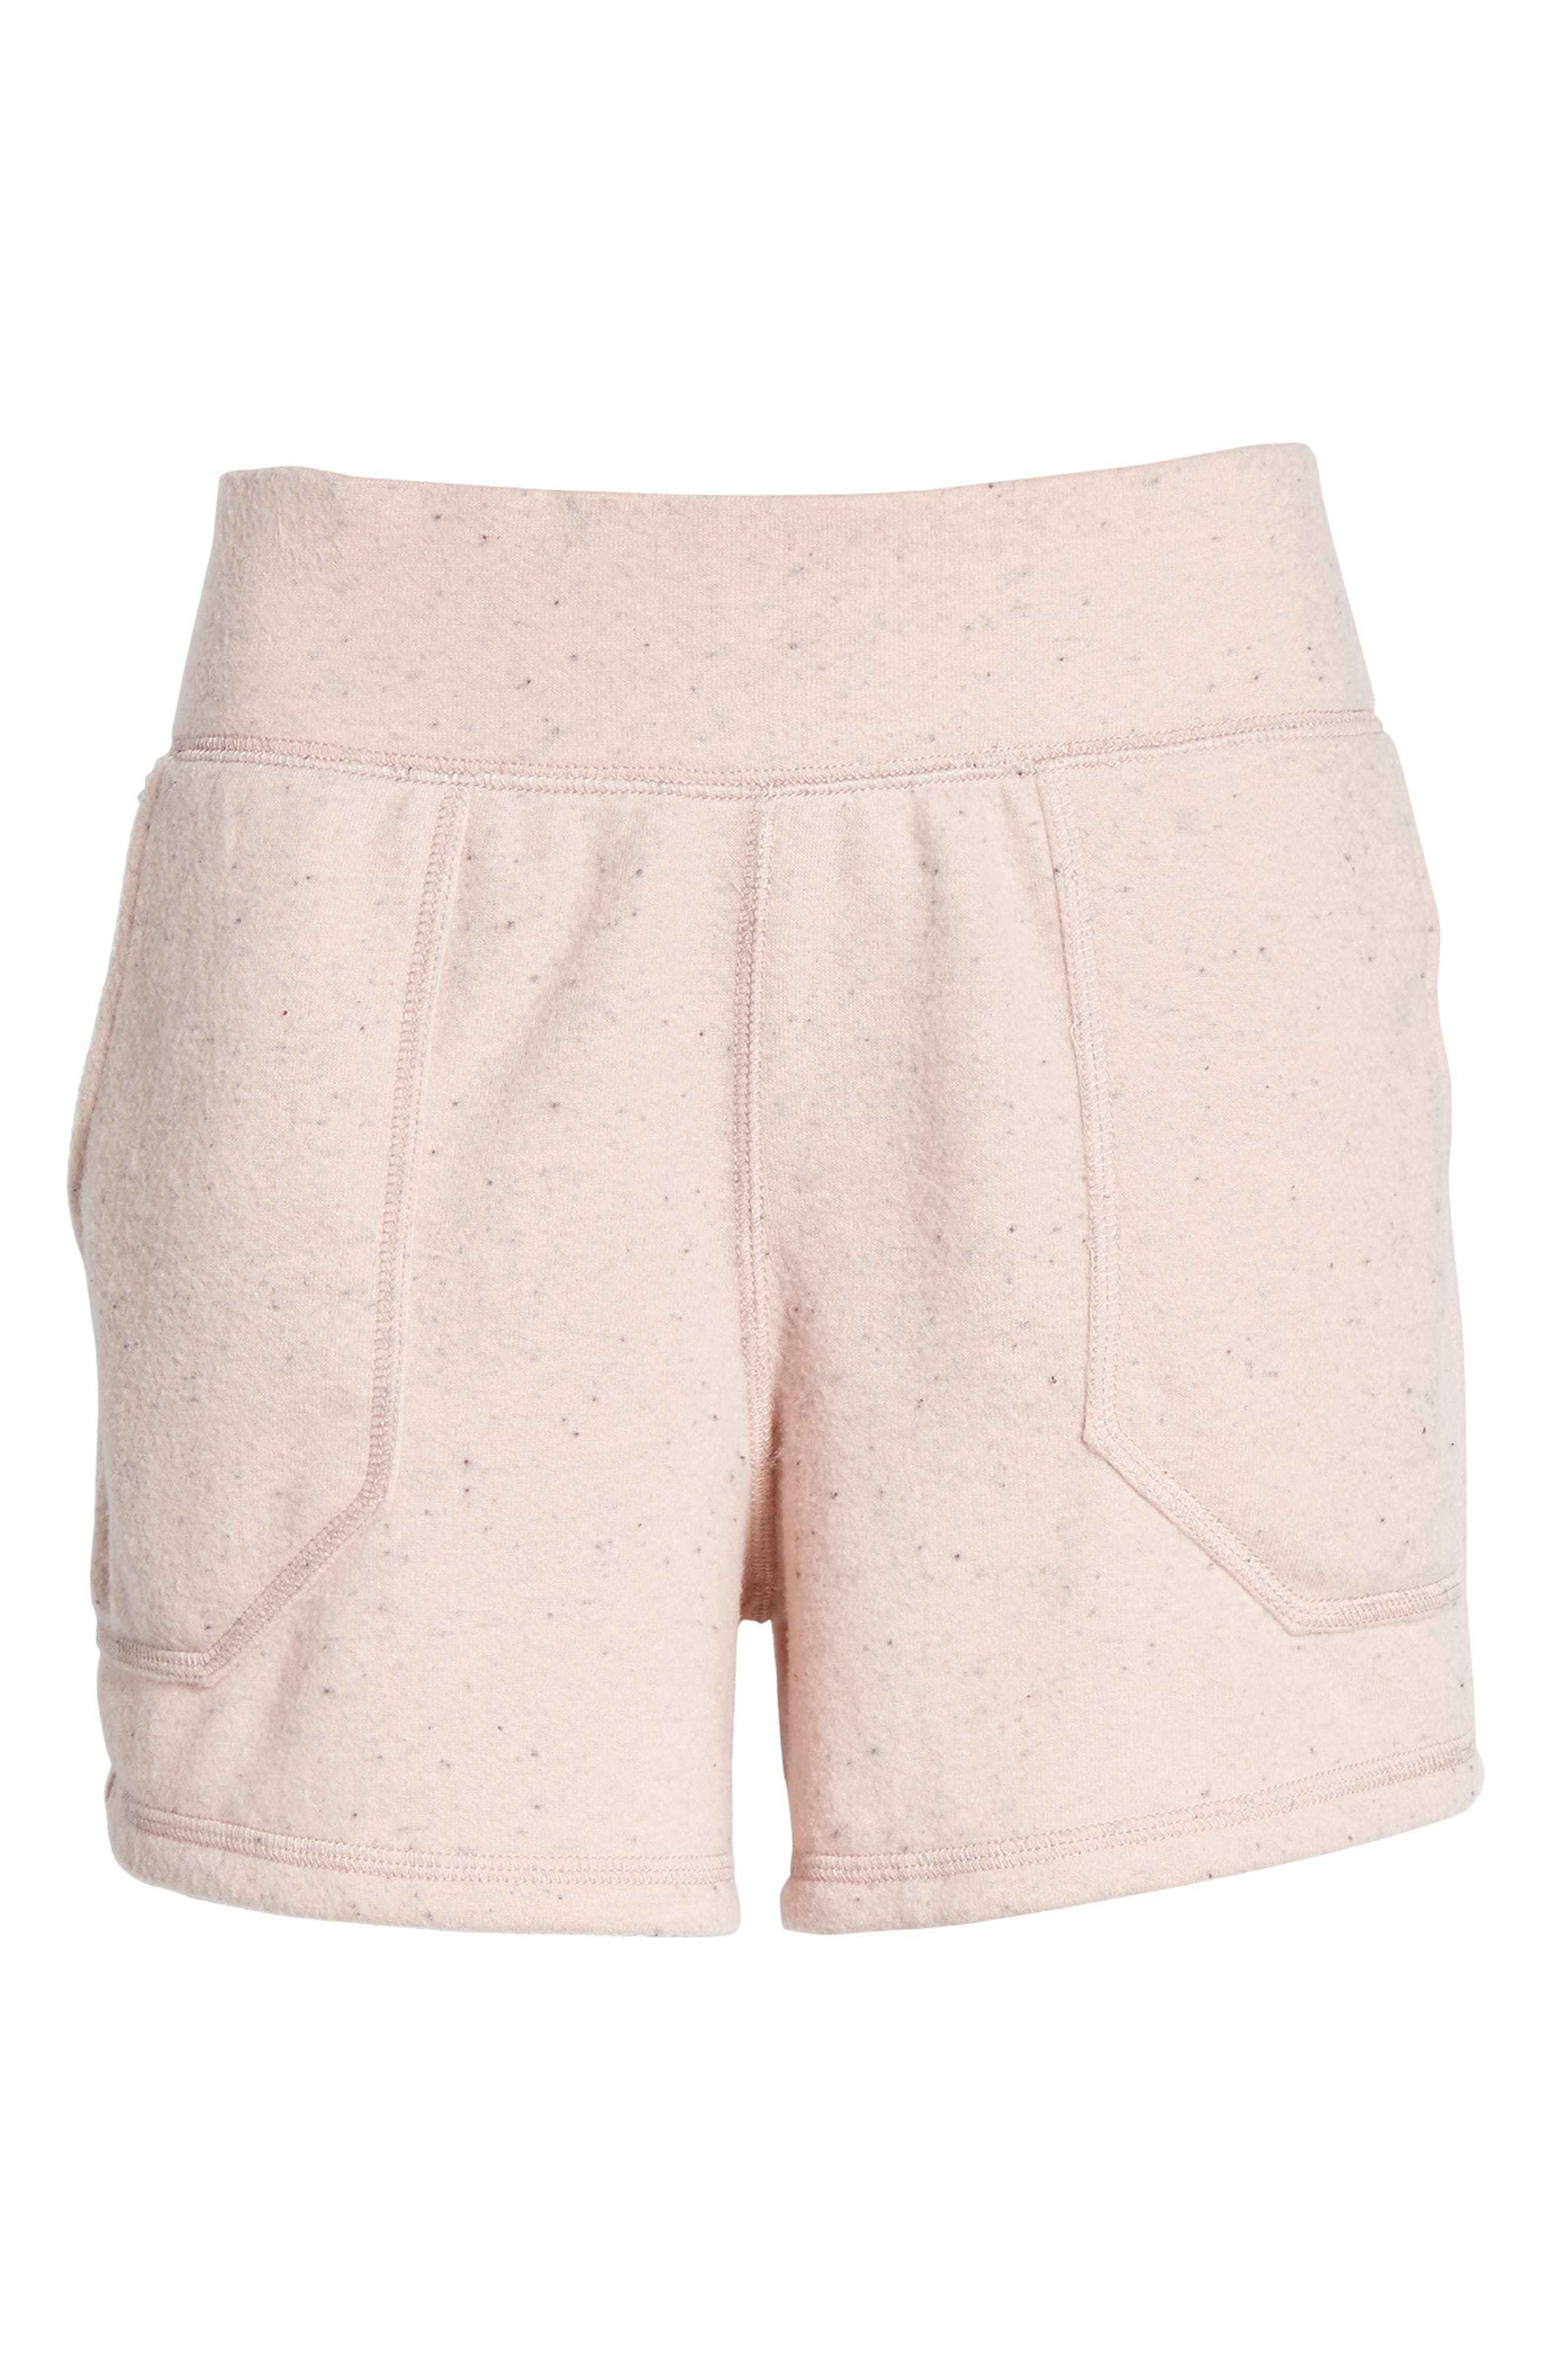 Off-Duty French Terry Shorts,                             Alternate thumbnail 26, color,